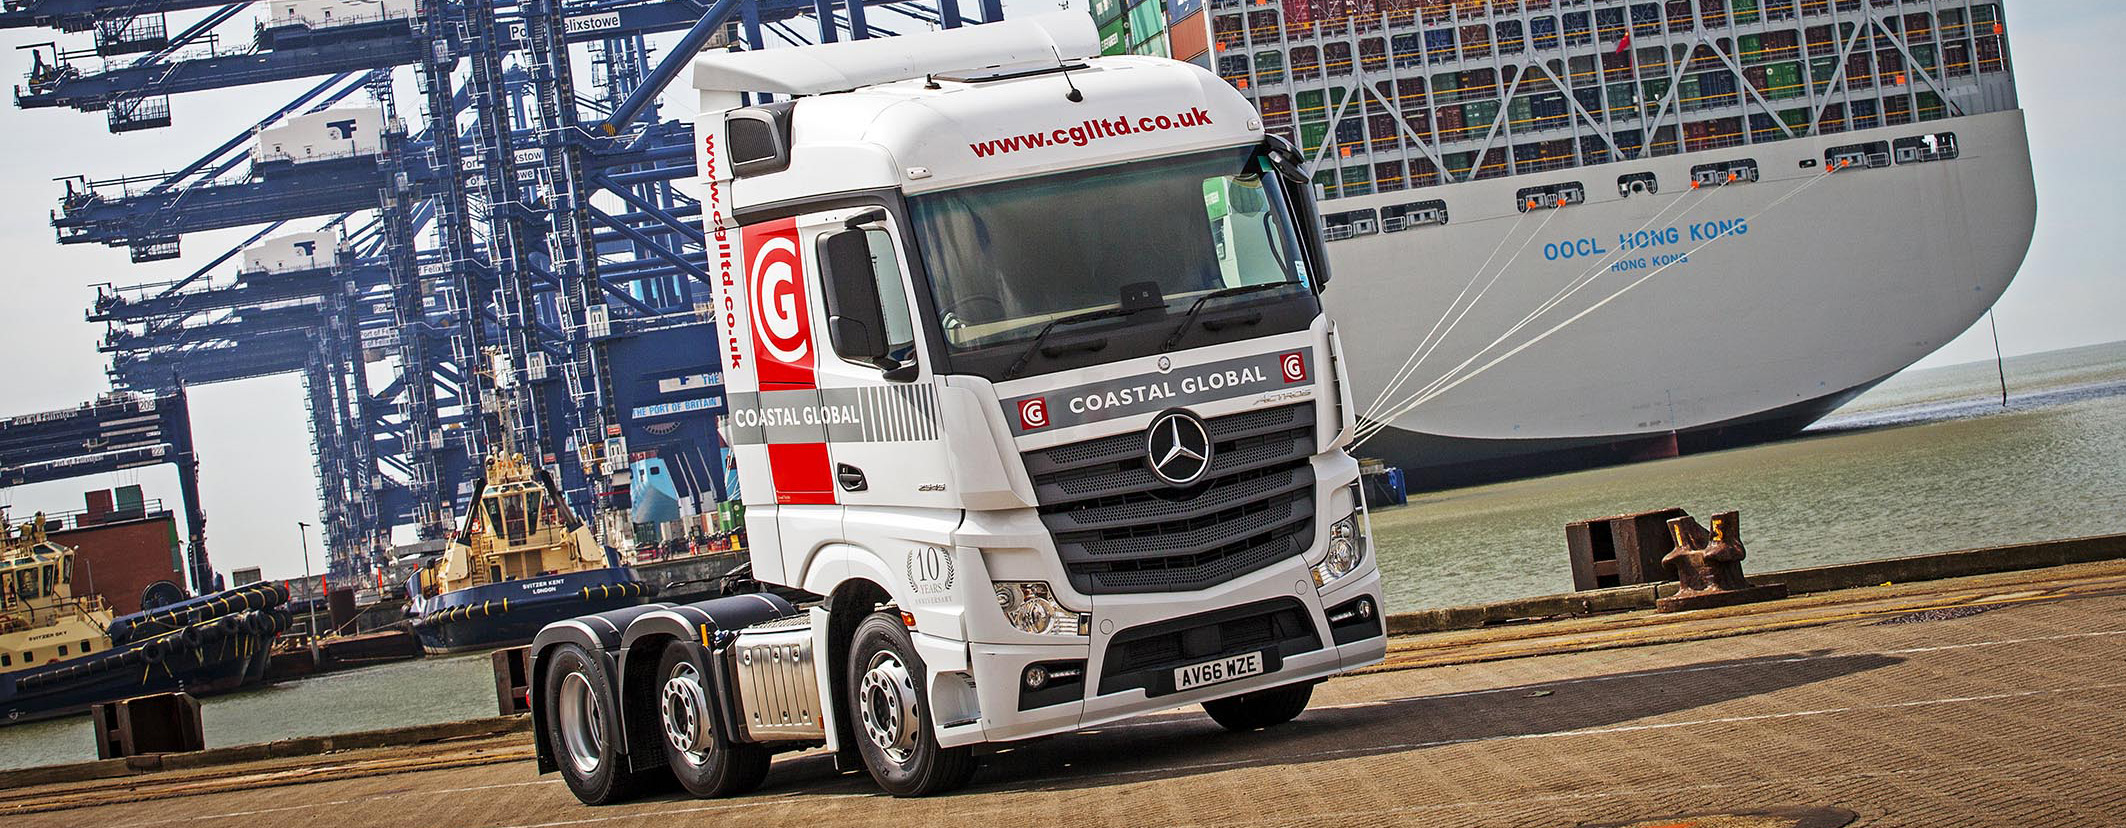 CGS Truck at Felixstowe Port